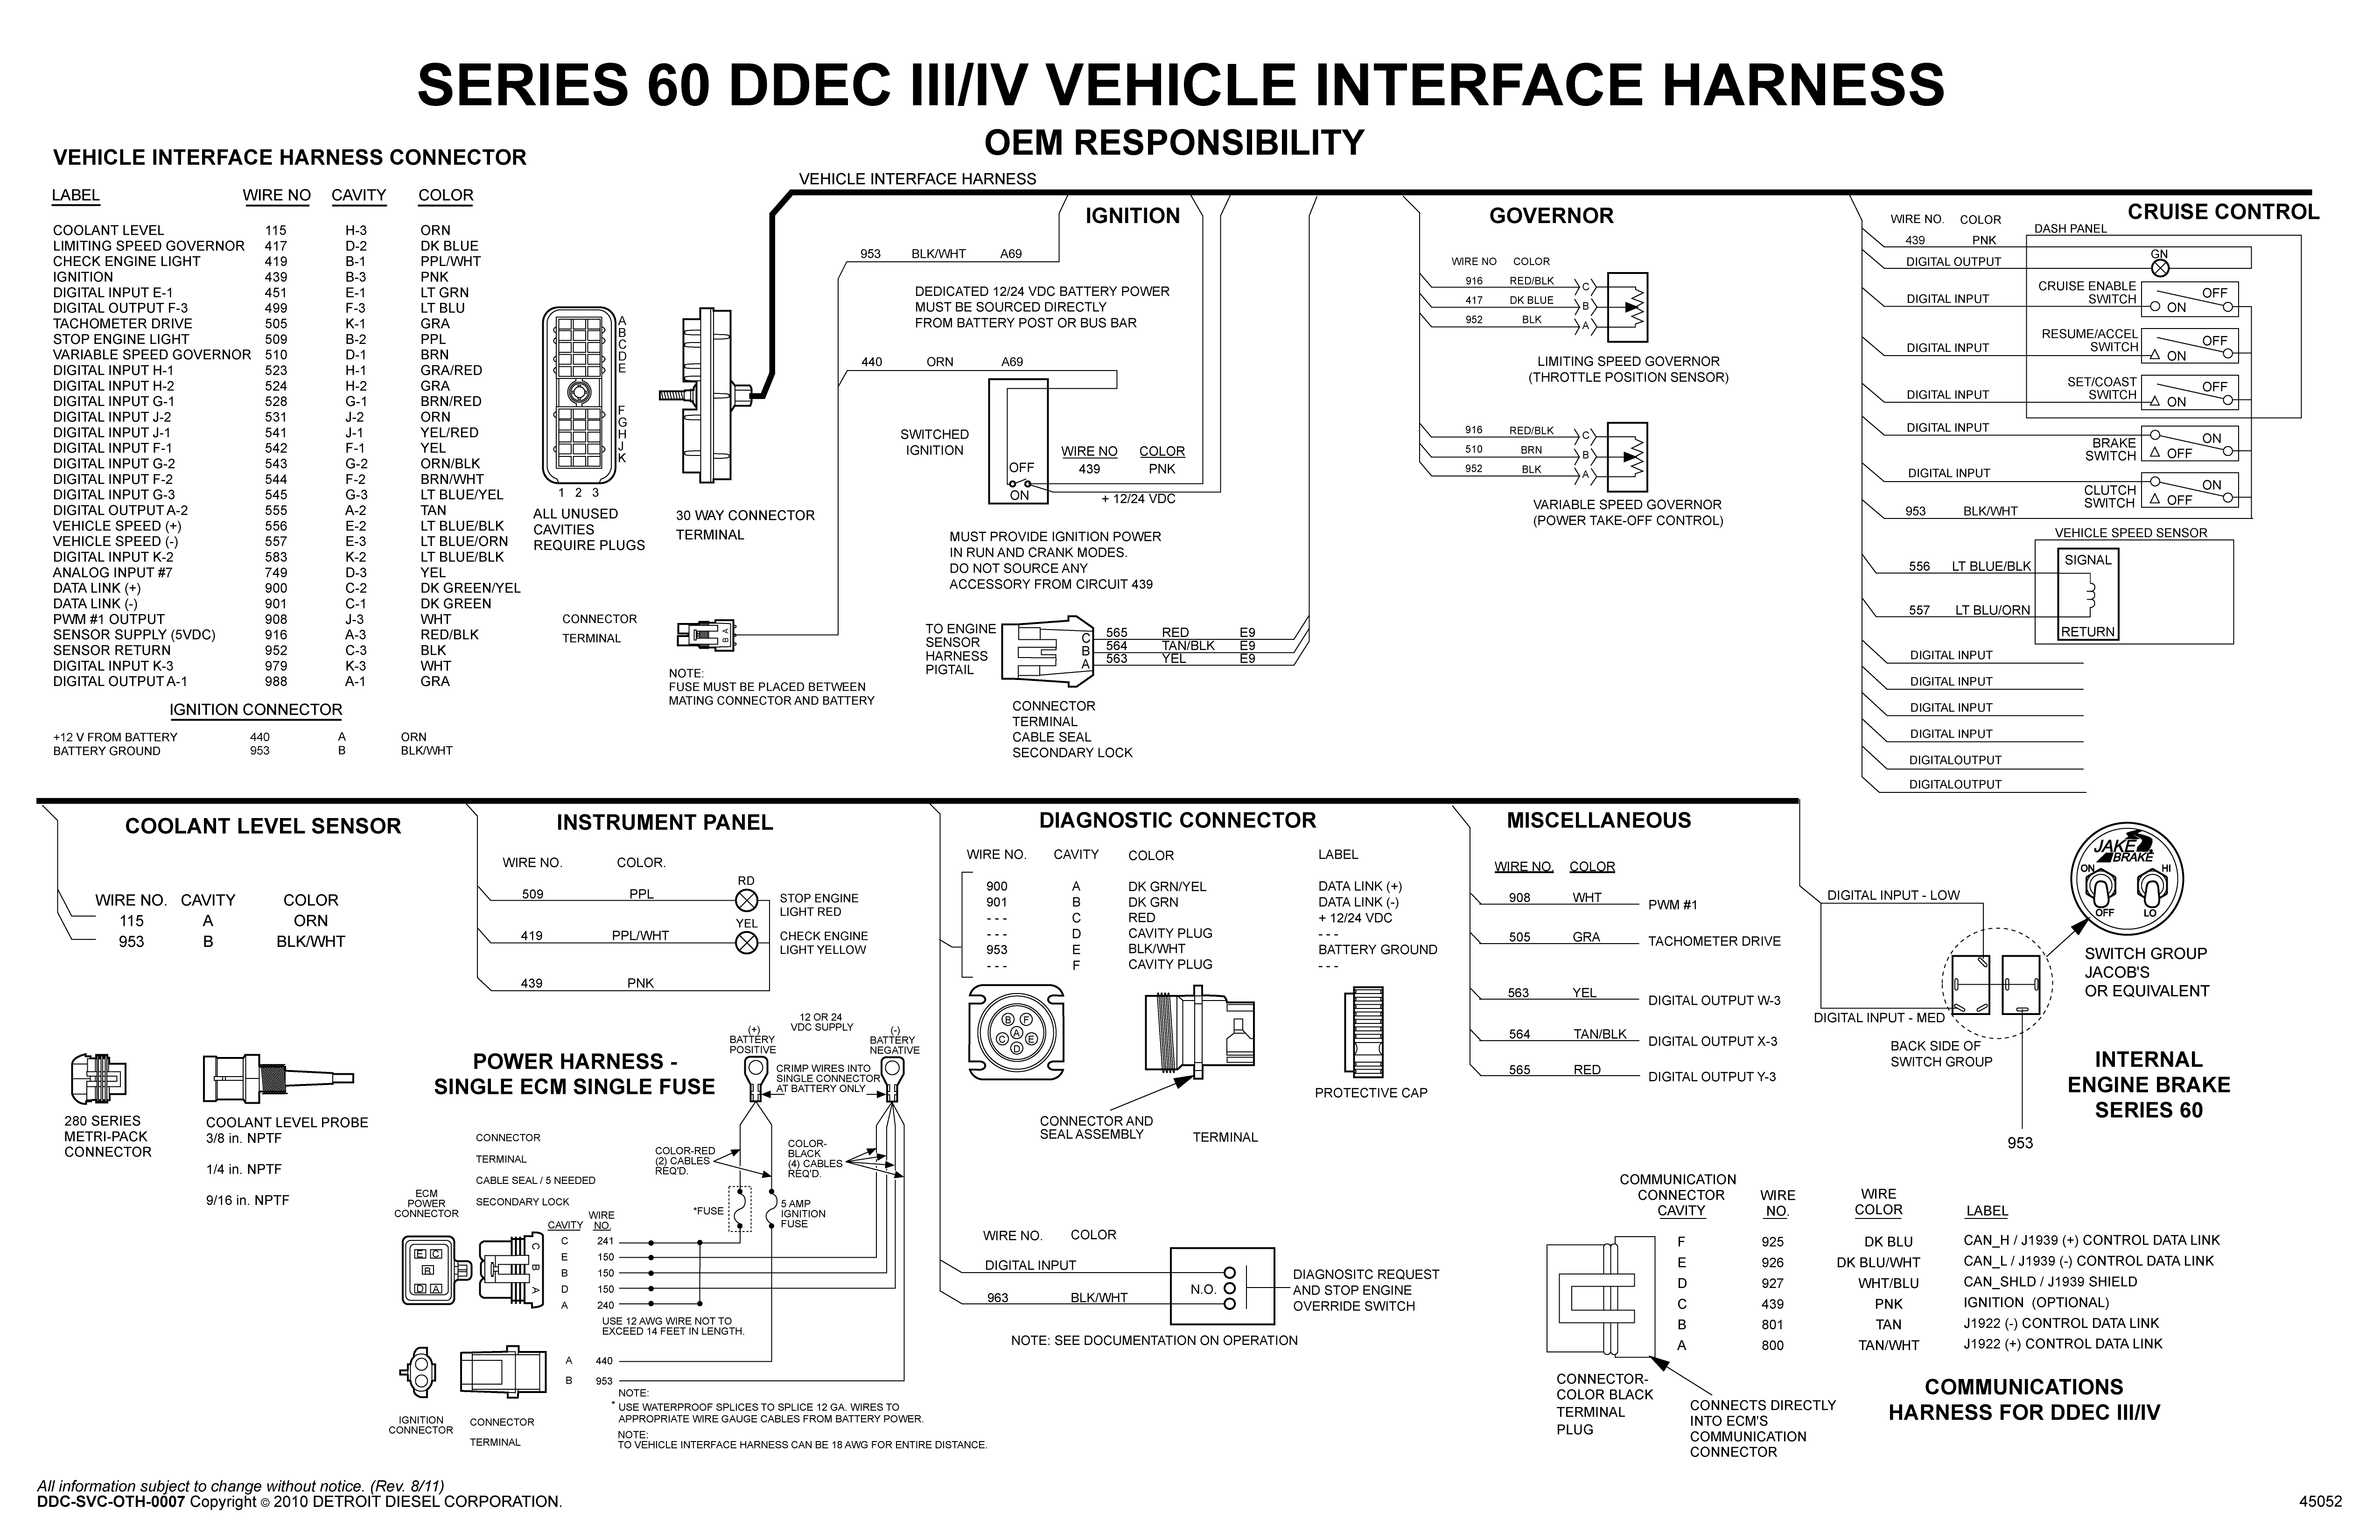 2013 09 21_060903_ddec34vehicleharness ddec 3 ecm wiring diagram detroit series 60 ecm wiring diagram ddec v wiring diagram at aneh.co